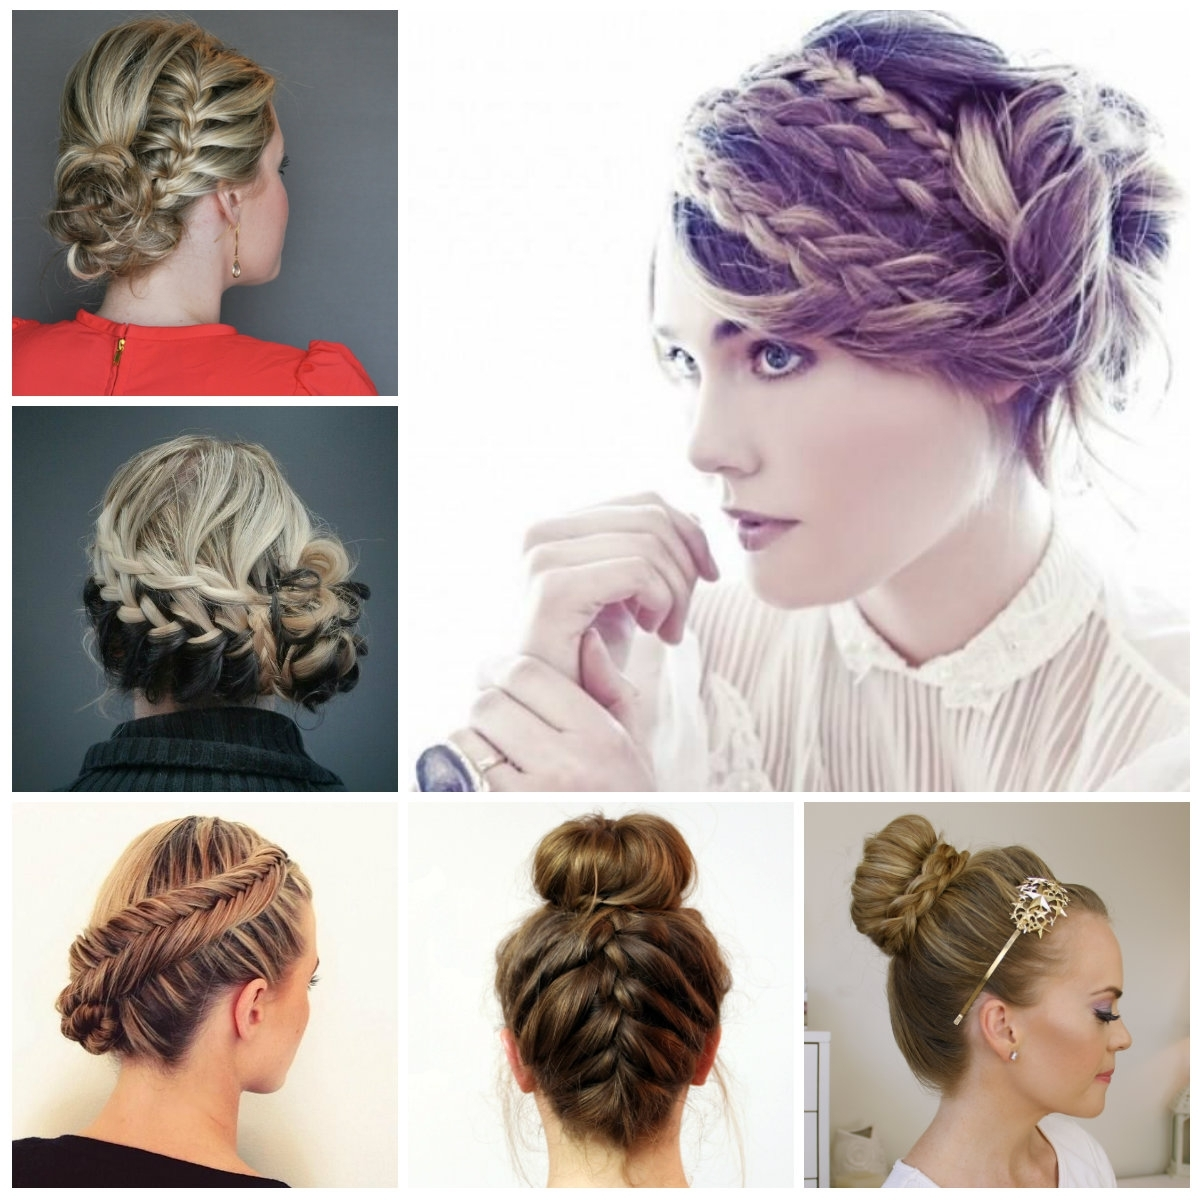 2017 Braided Hair Updo Hairstyles For Long Thin Hair Regarding Braided Hair Updo Hairstyles (View 13 of 15)